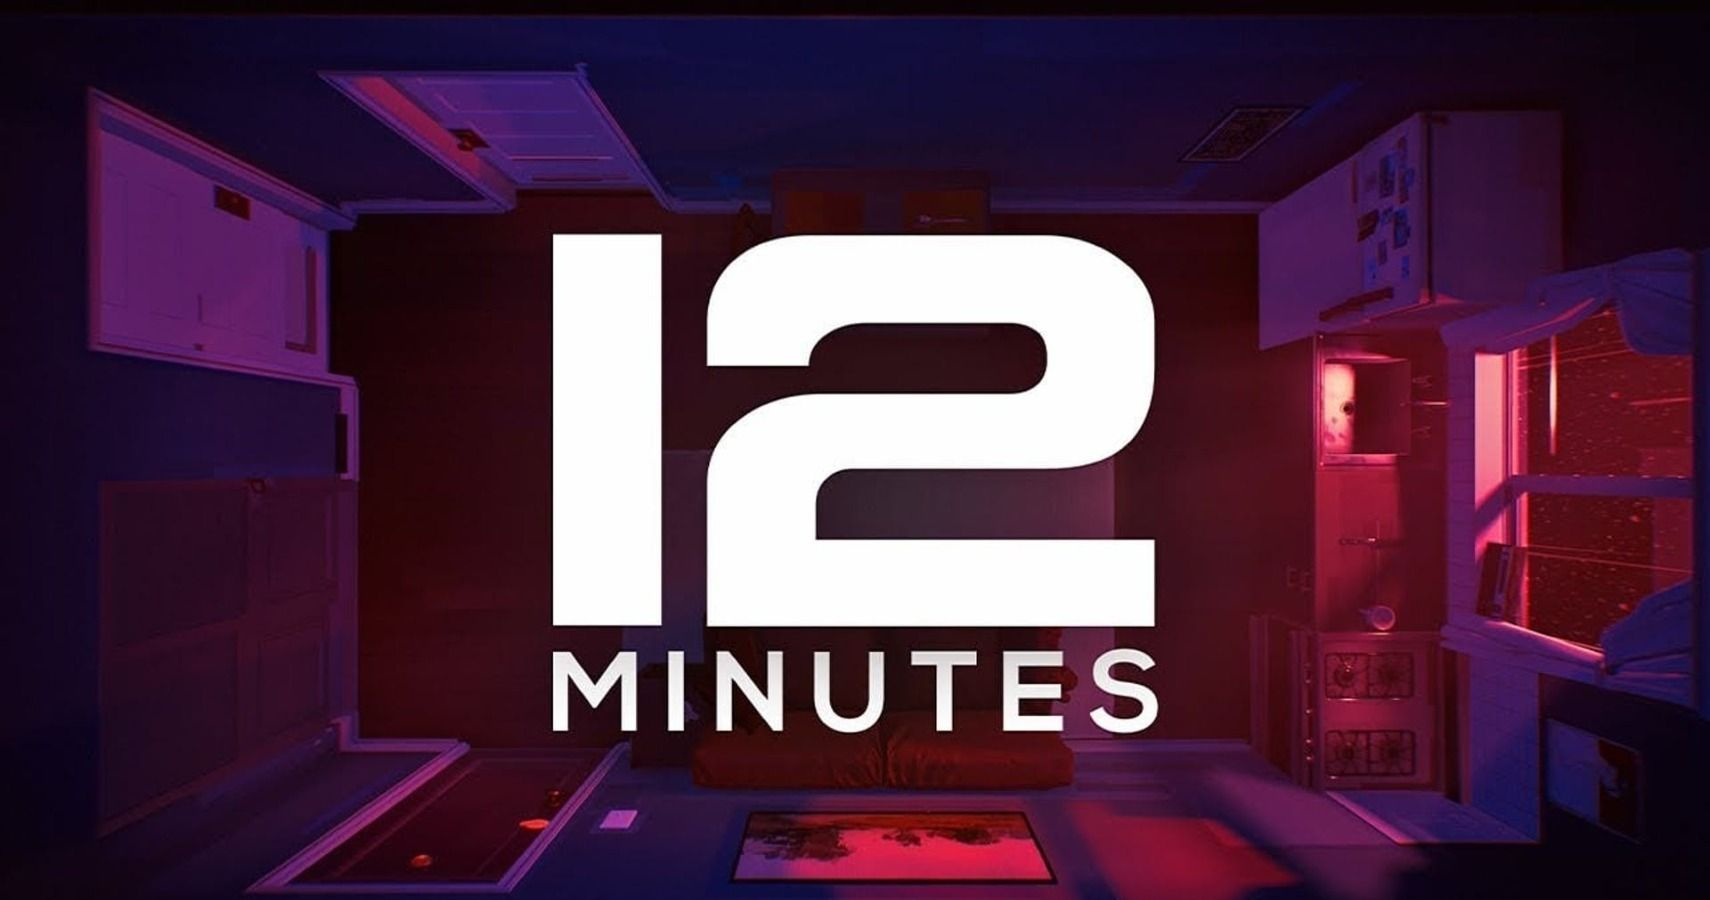 Interview: Luis Antonio On The Ambitious Creation Of 12 Minutes